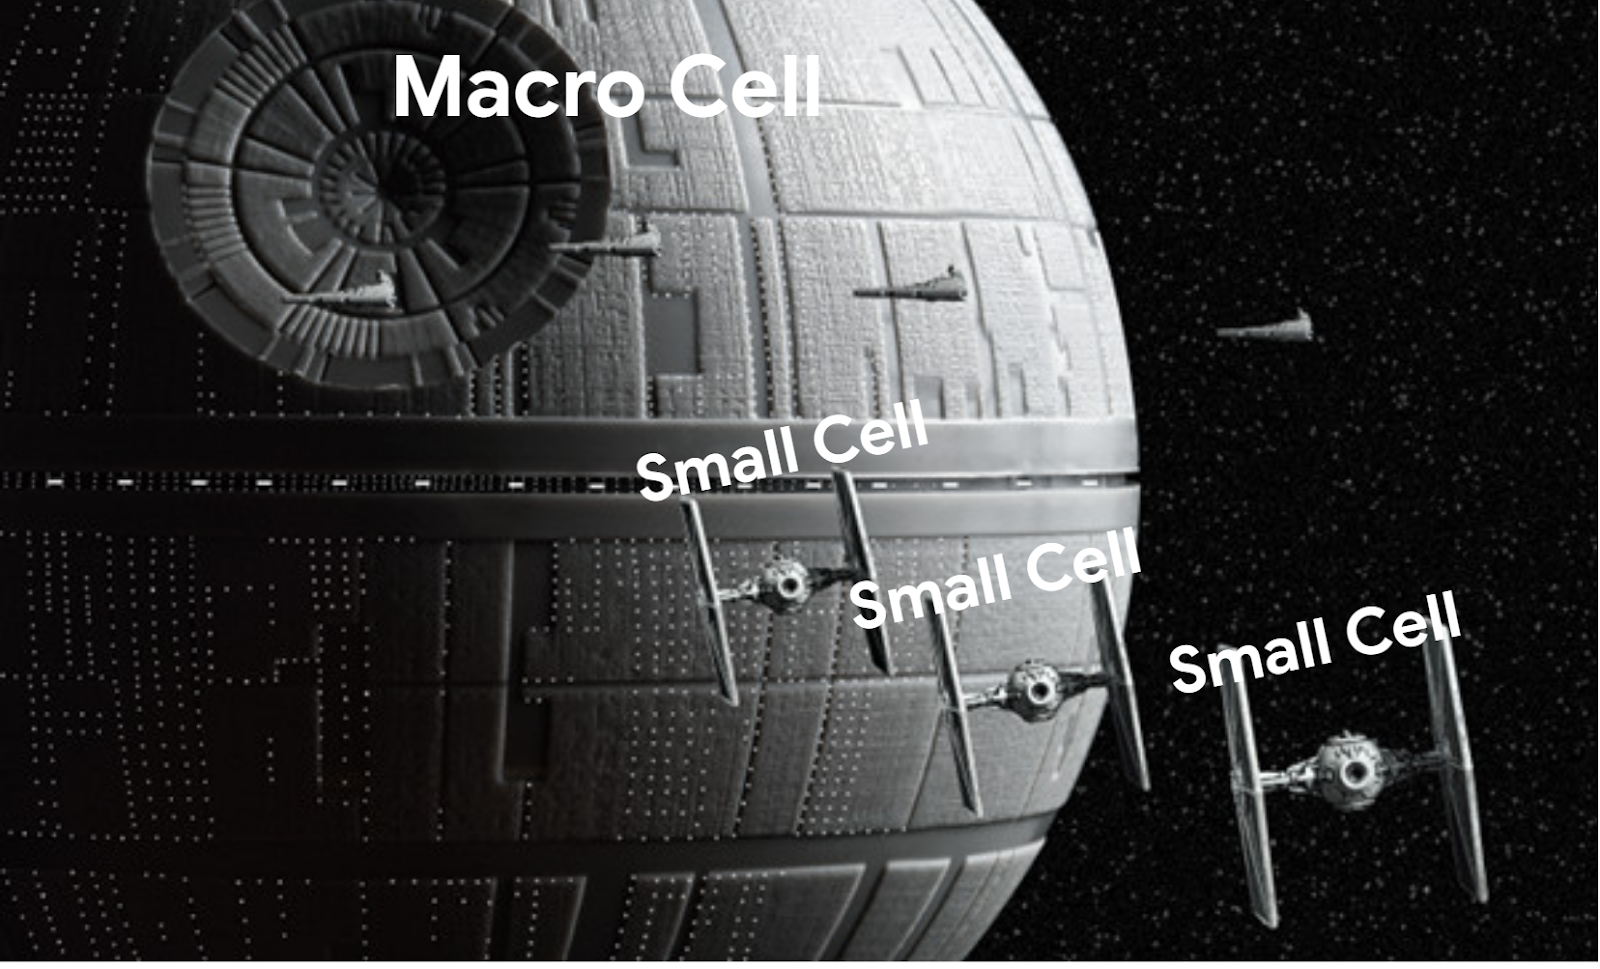 Star wars analogy of cellular small cells and macro cells